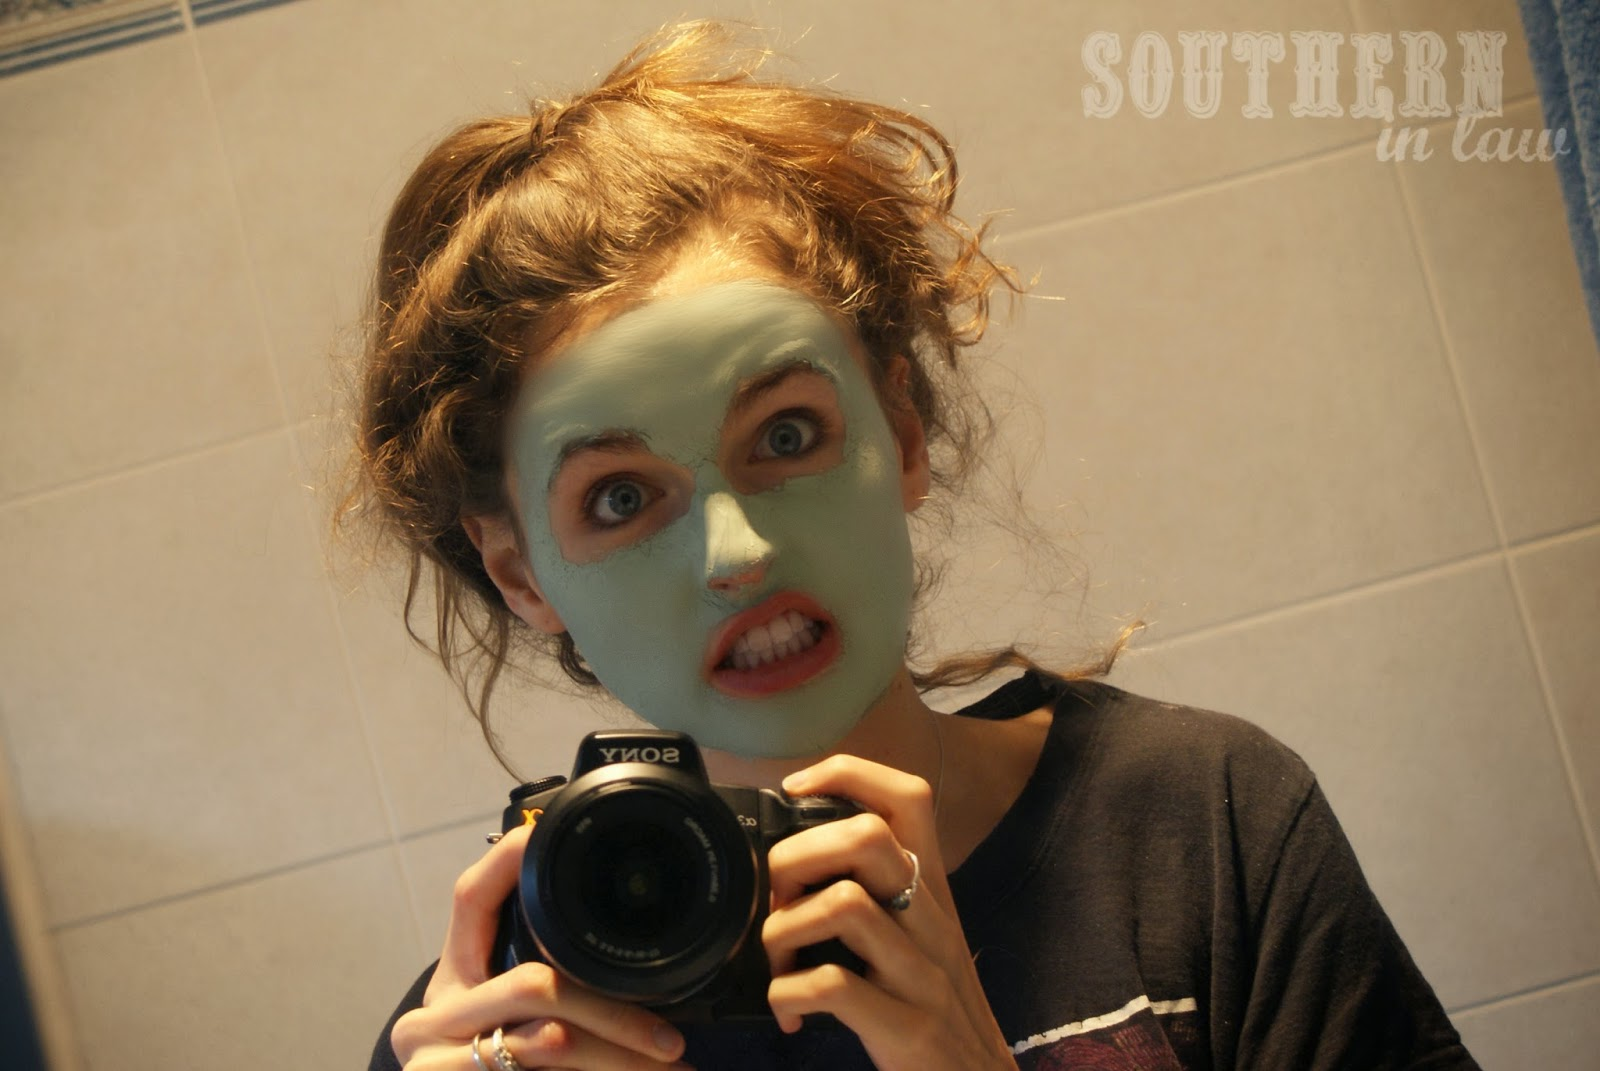 Face masks are not attractive